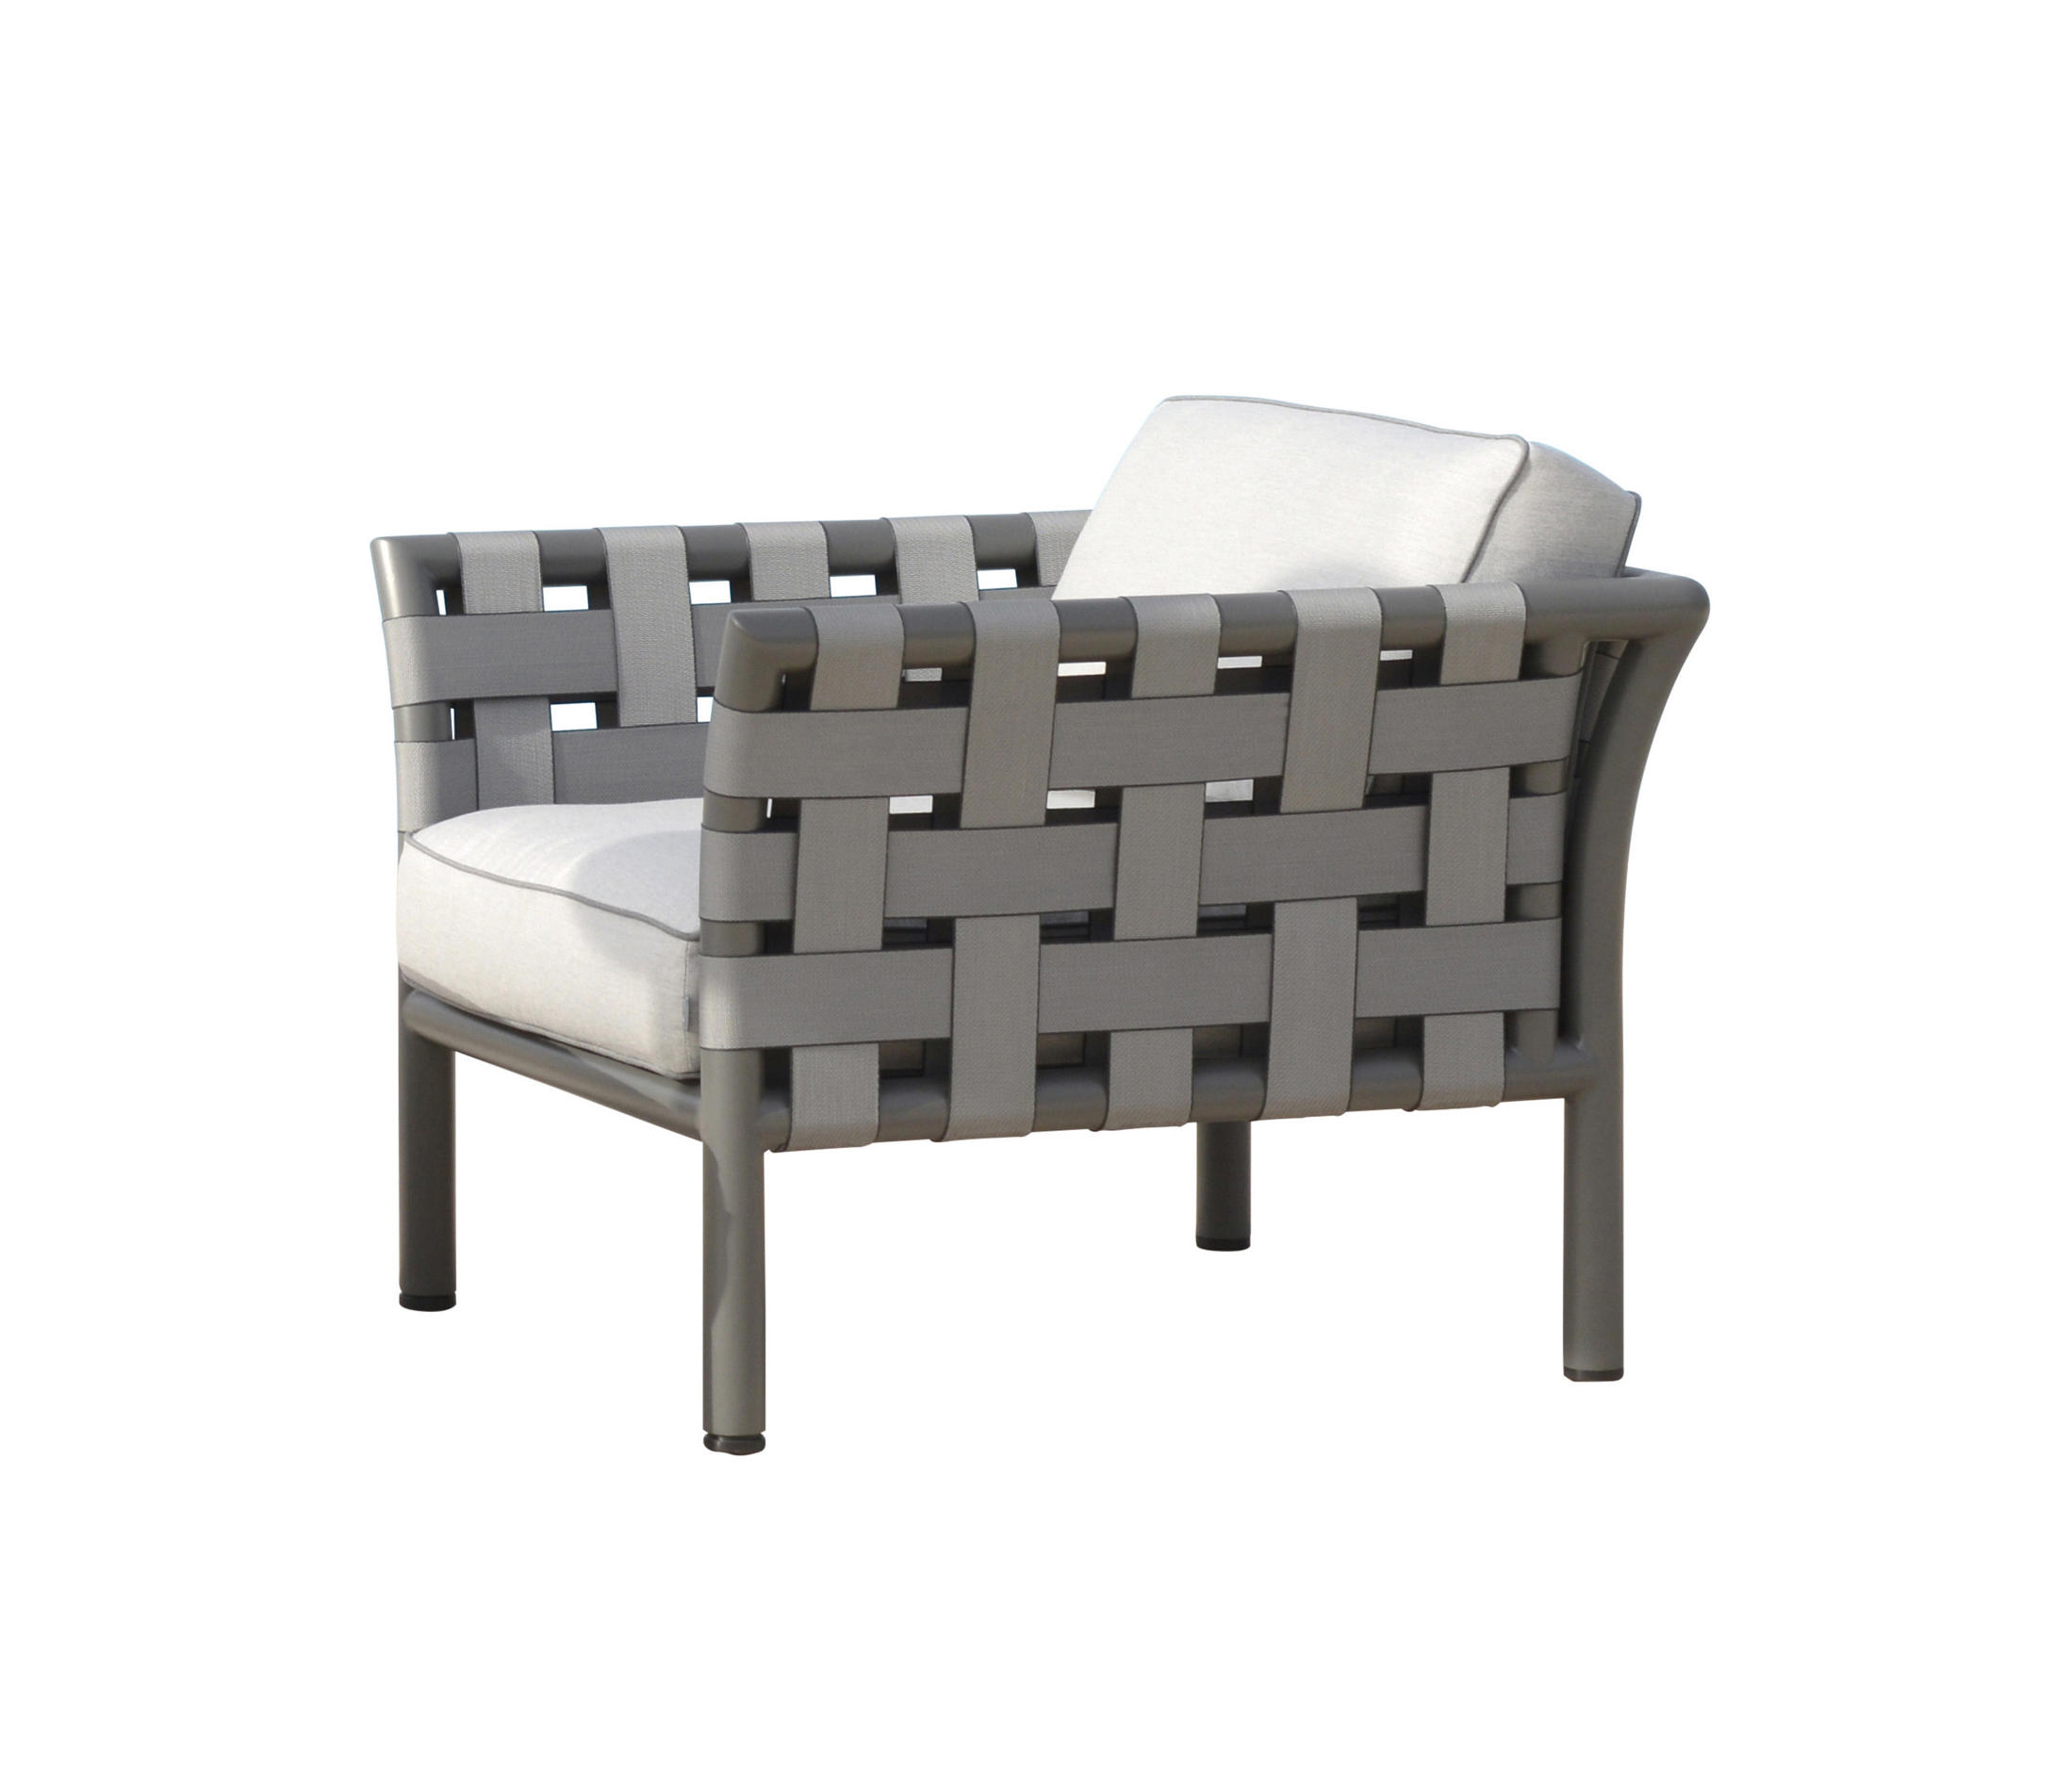 pipe lounge chair garden armchairs from rausch classics. Black Bedroom Furniture Sets. Home Design Ideas